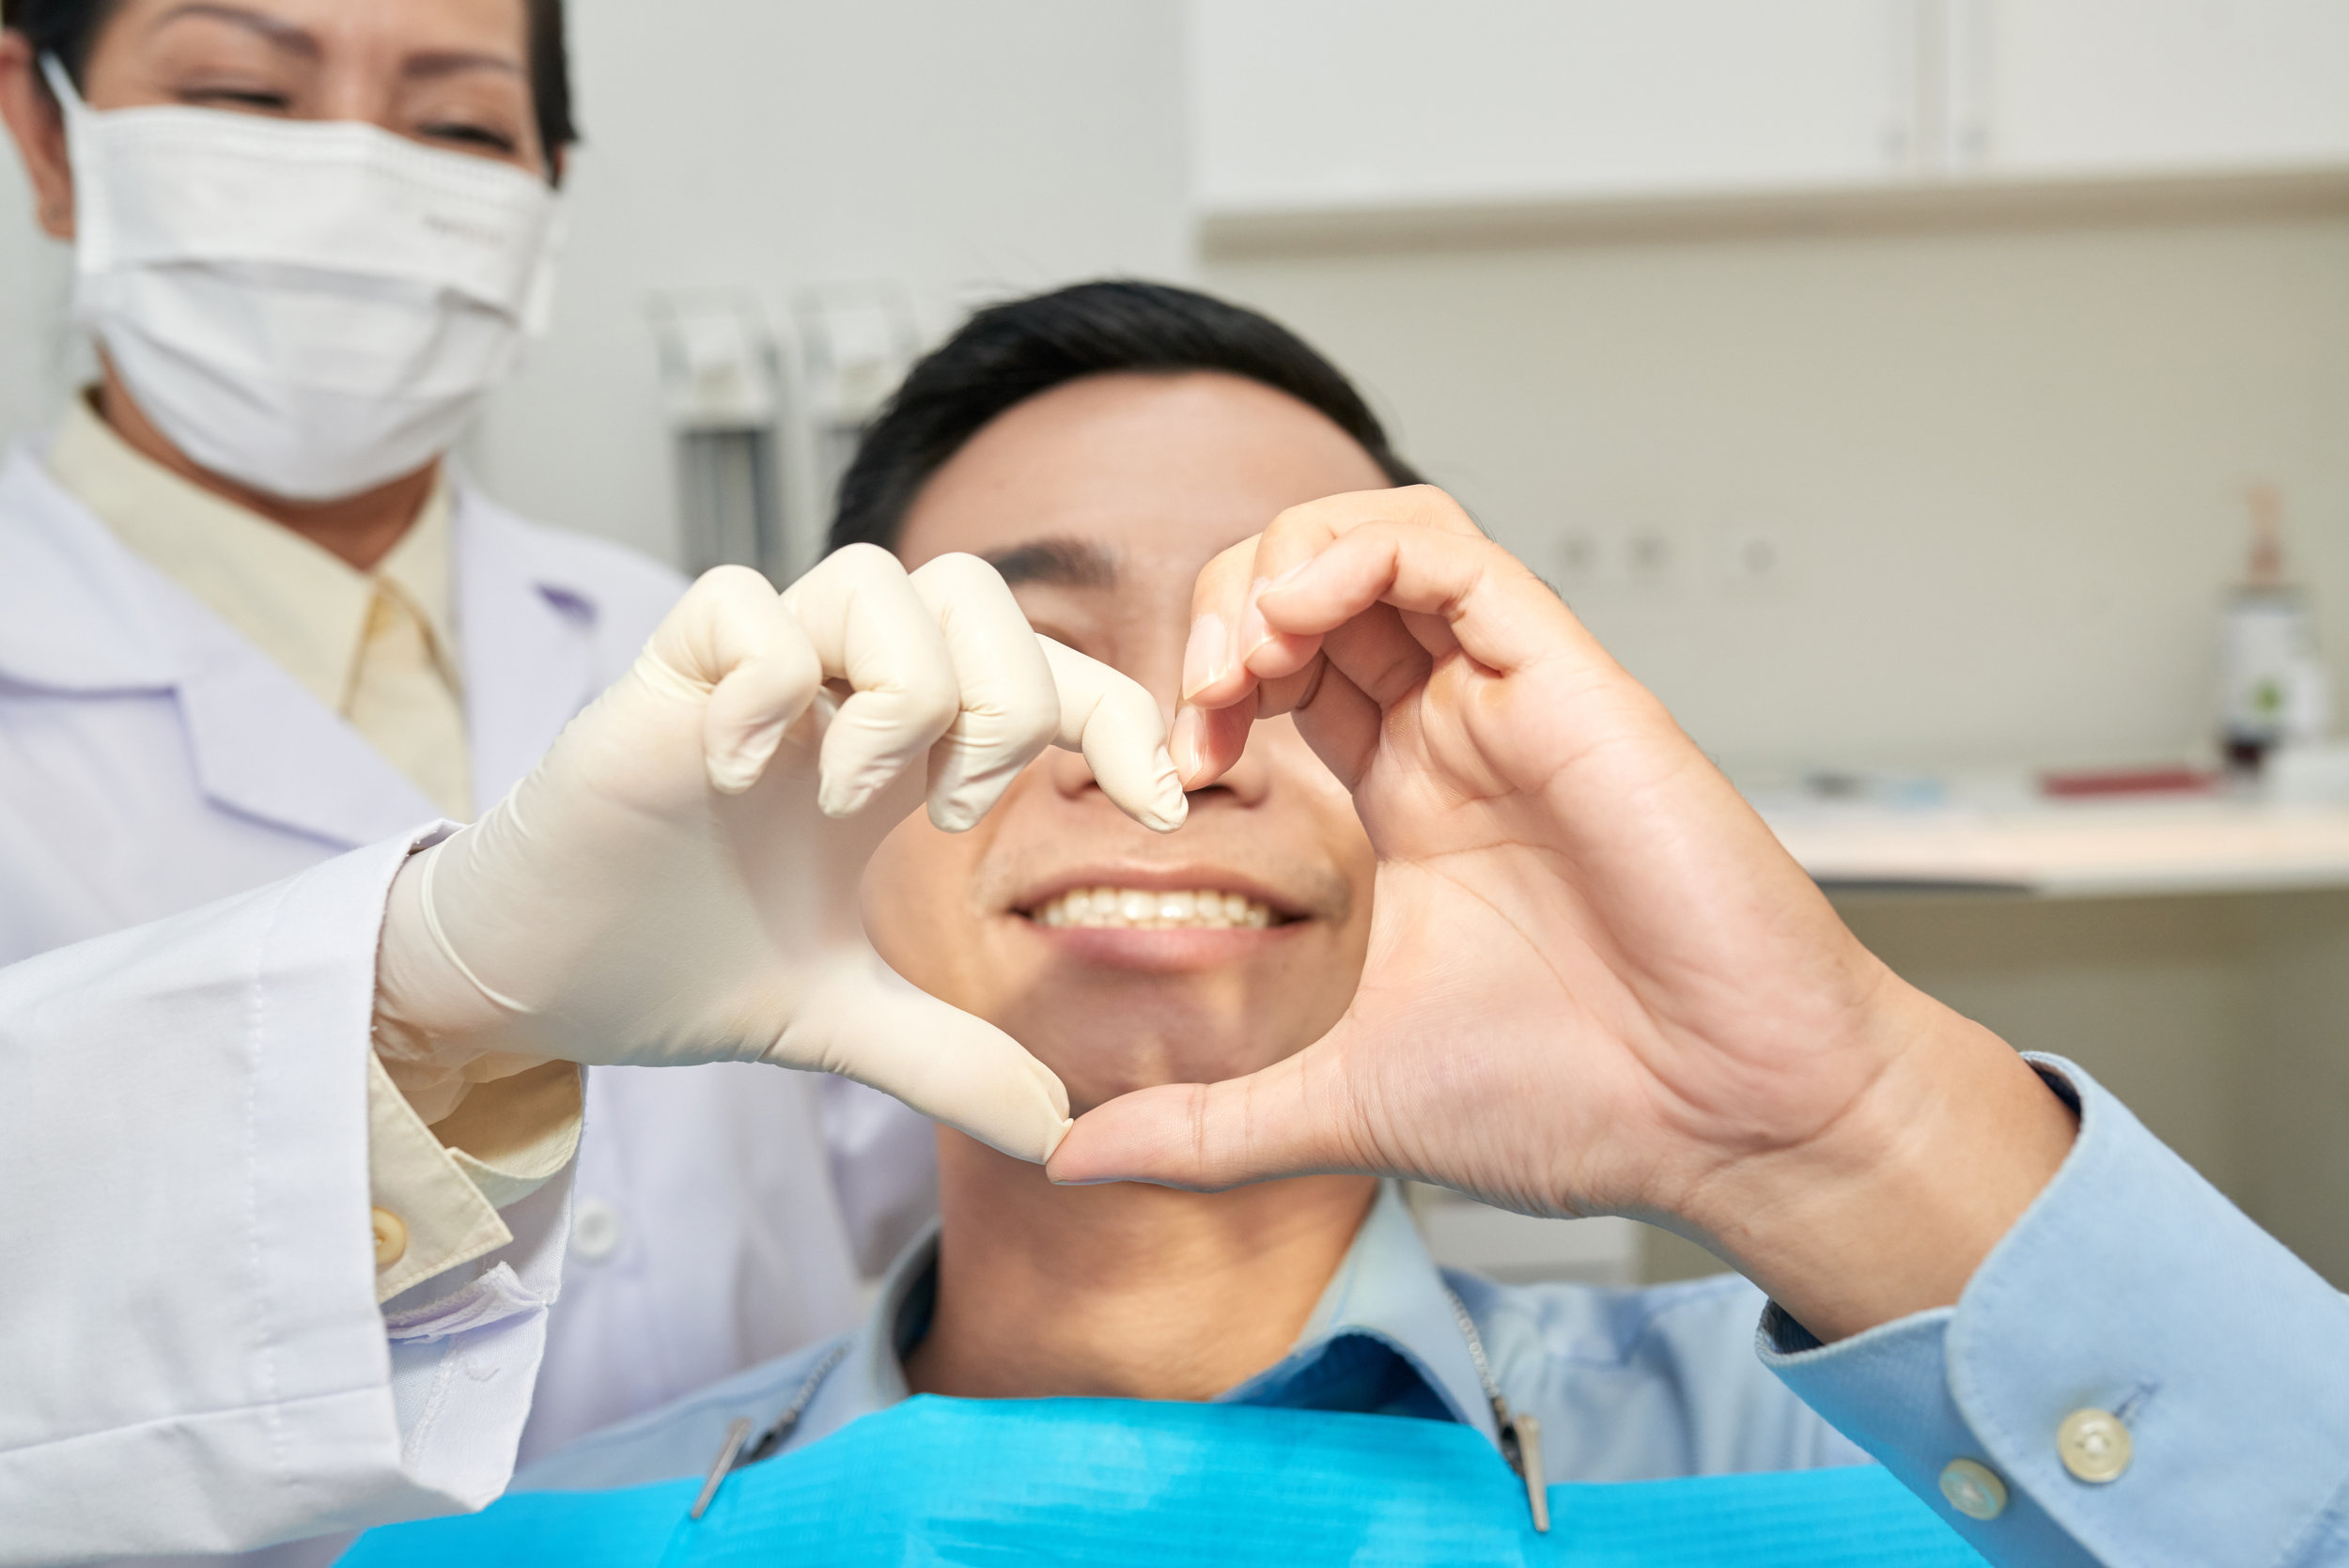 bigstock-Patient-And-Dentist-Showing-He-256418182.jpg